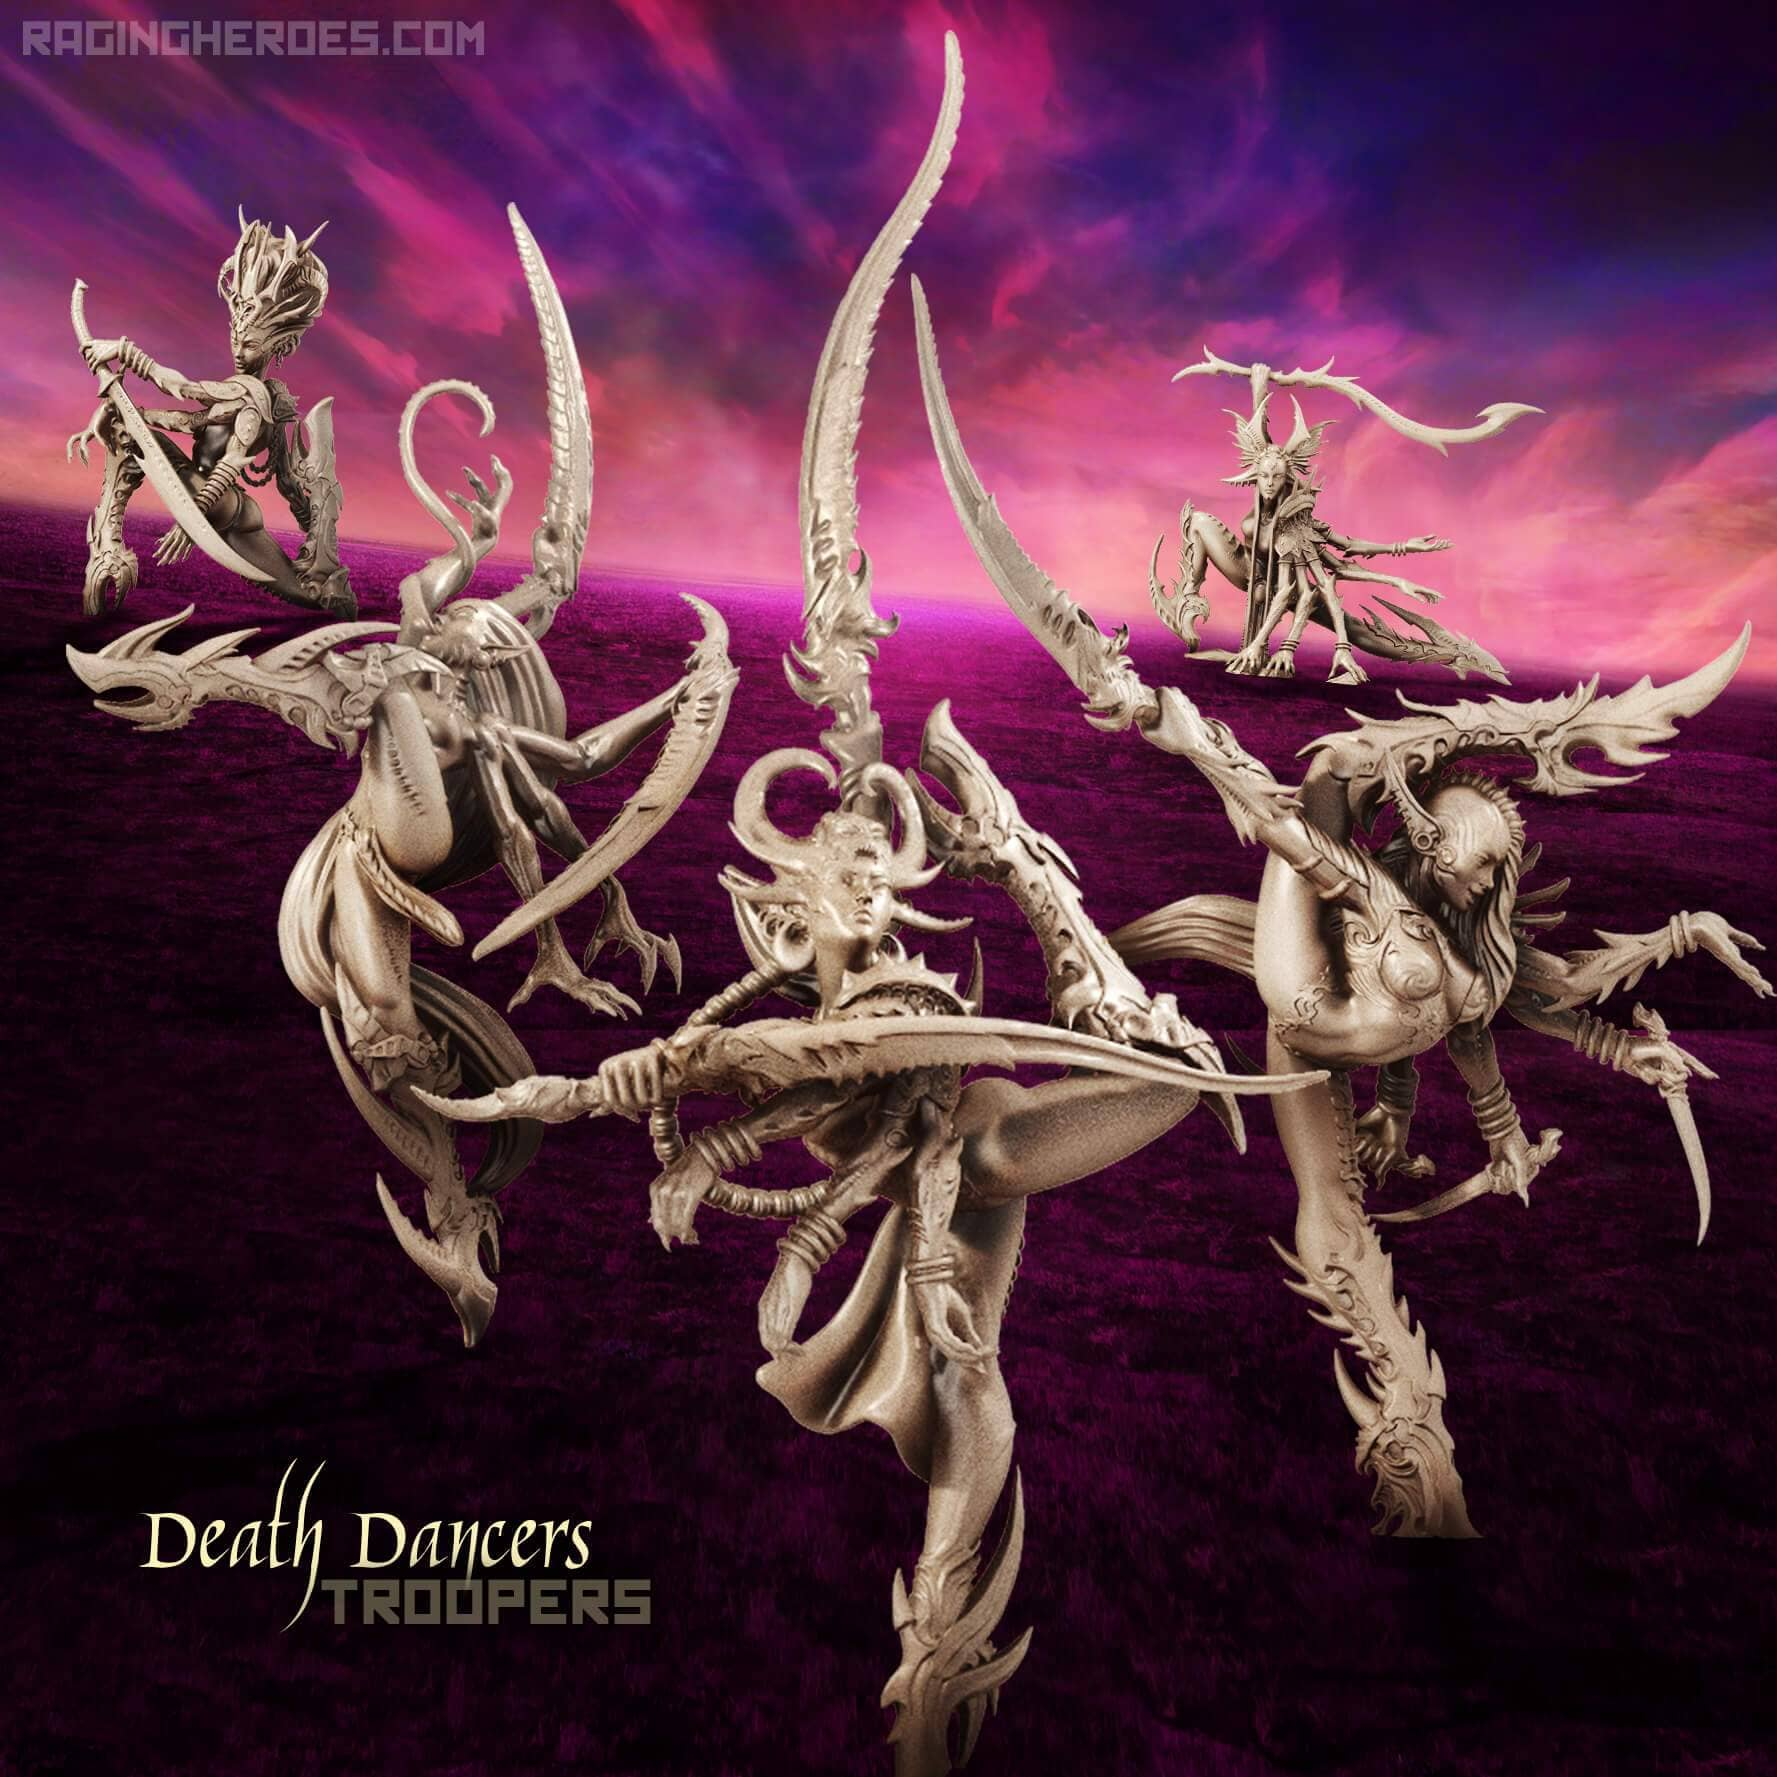 Death Dancers All Stars - TROOPS (LE - F/SF) - Raging Heroes